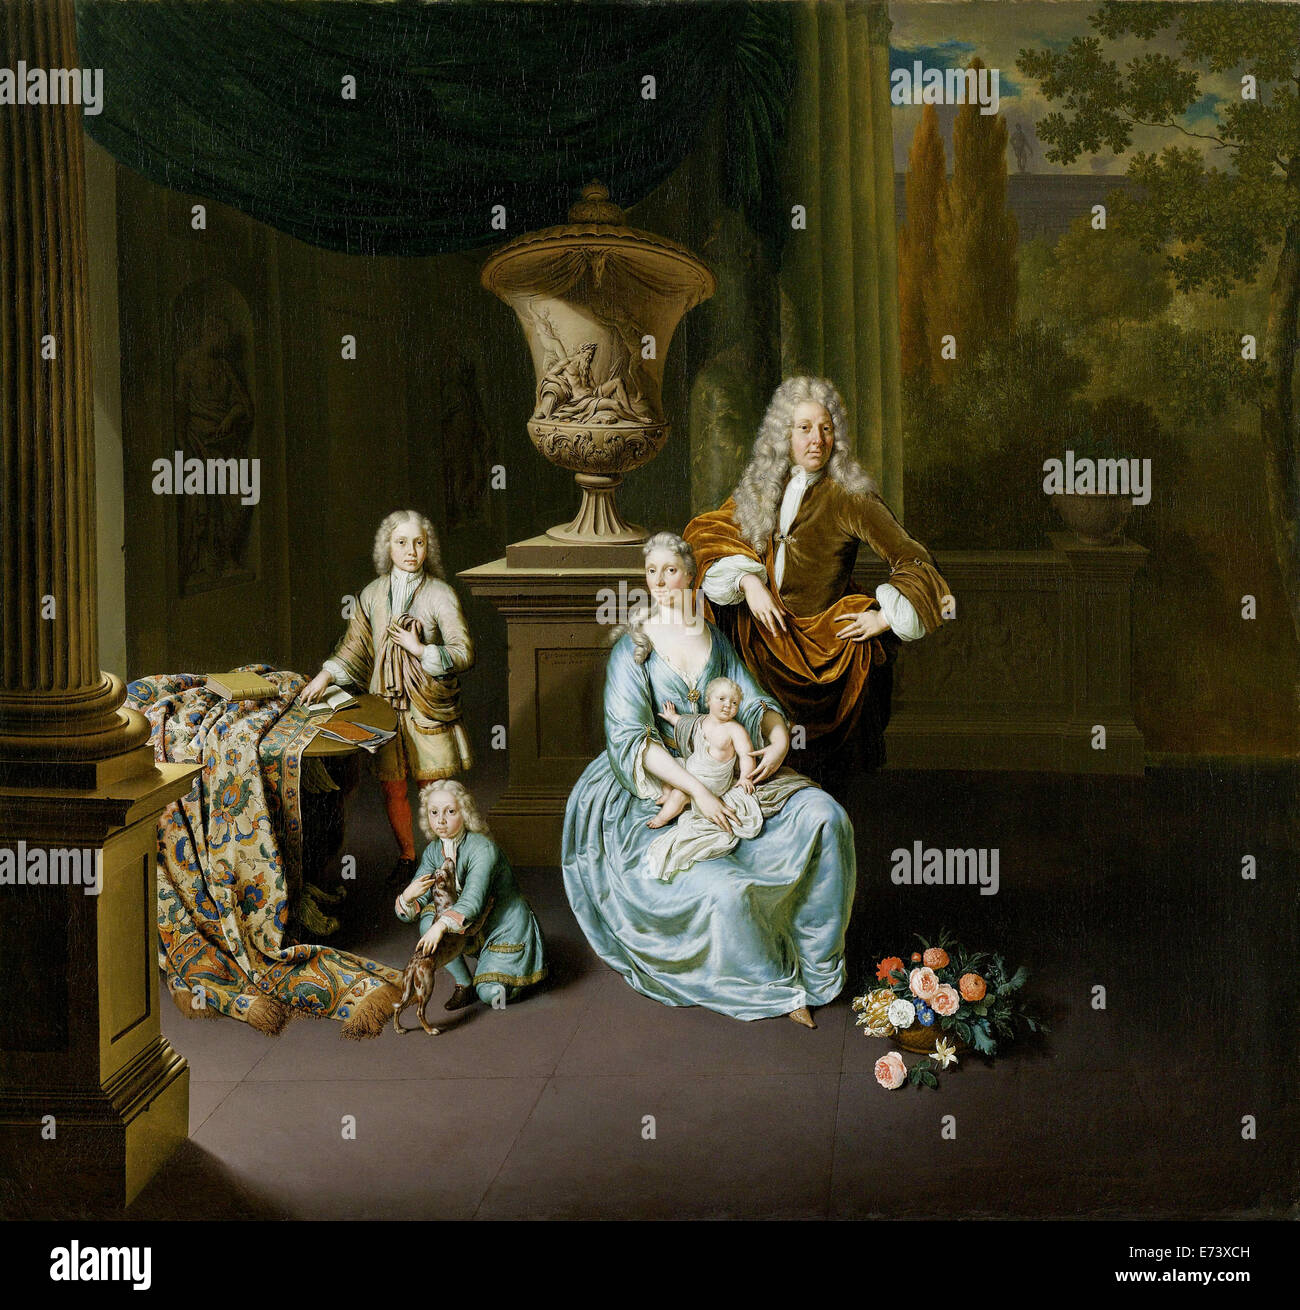 Diederik van Leyden Baron van Vlaardingen (1695-1764) with his wife and three sons- by Willem van Mieris, 1728 - Stock Image